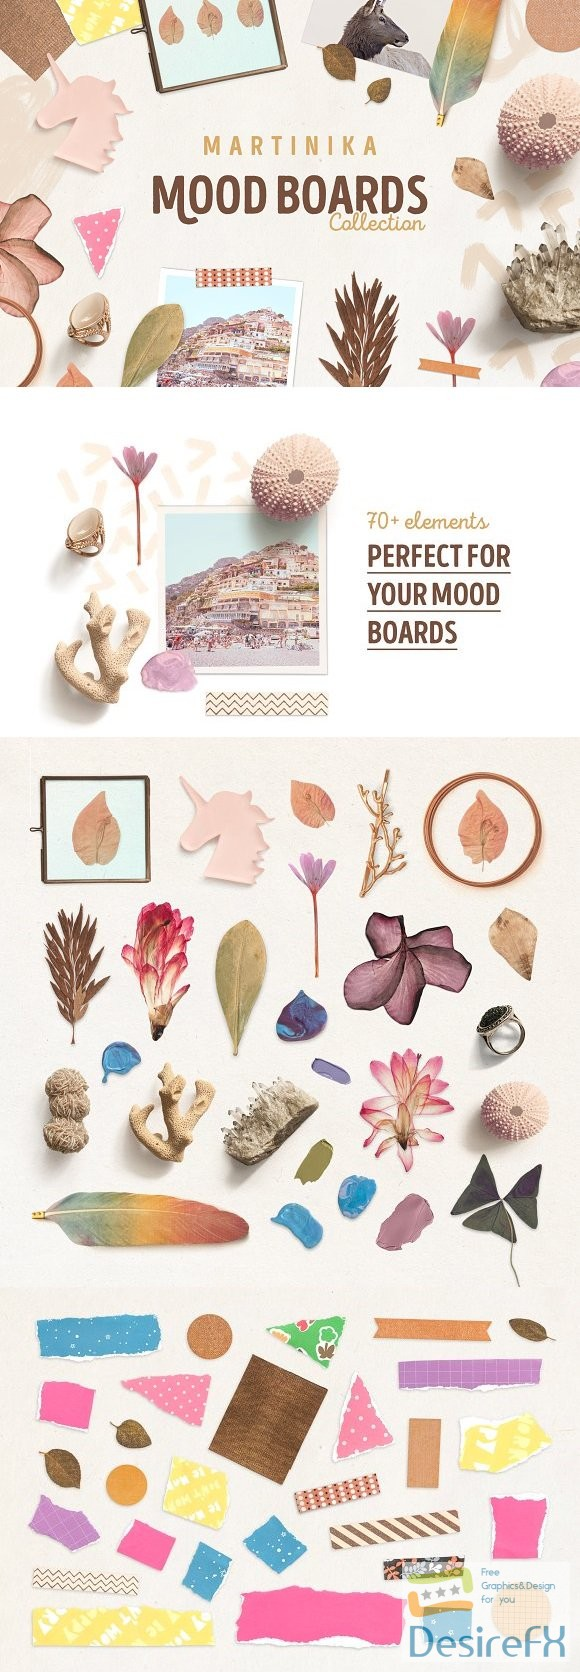 Martinika Mood Boards Collection – 2770702